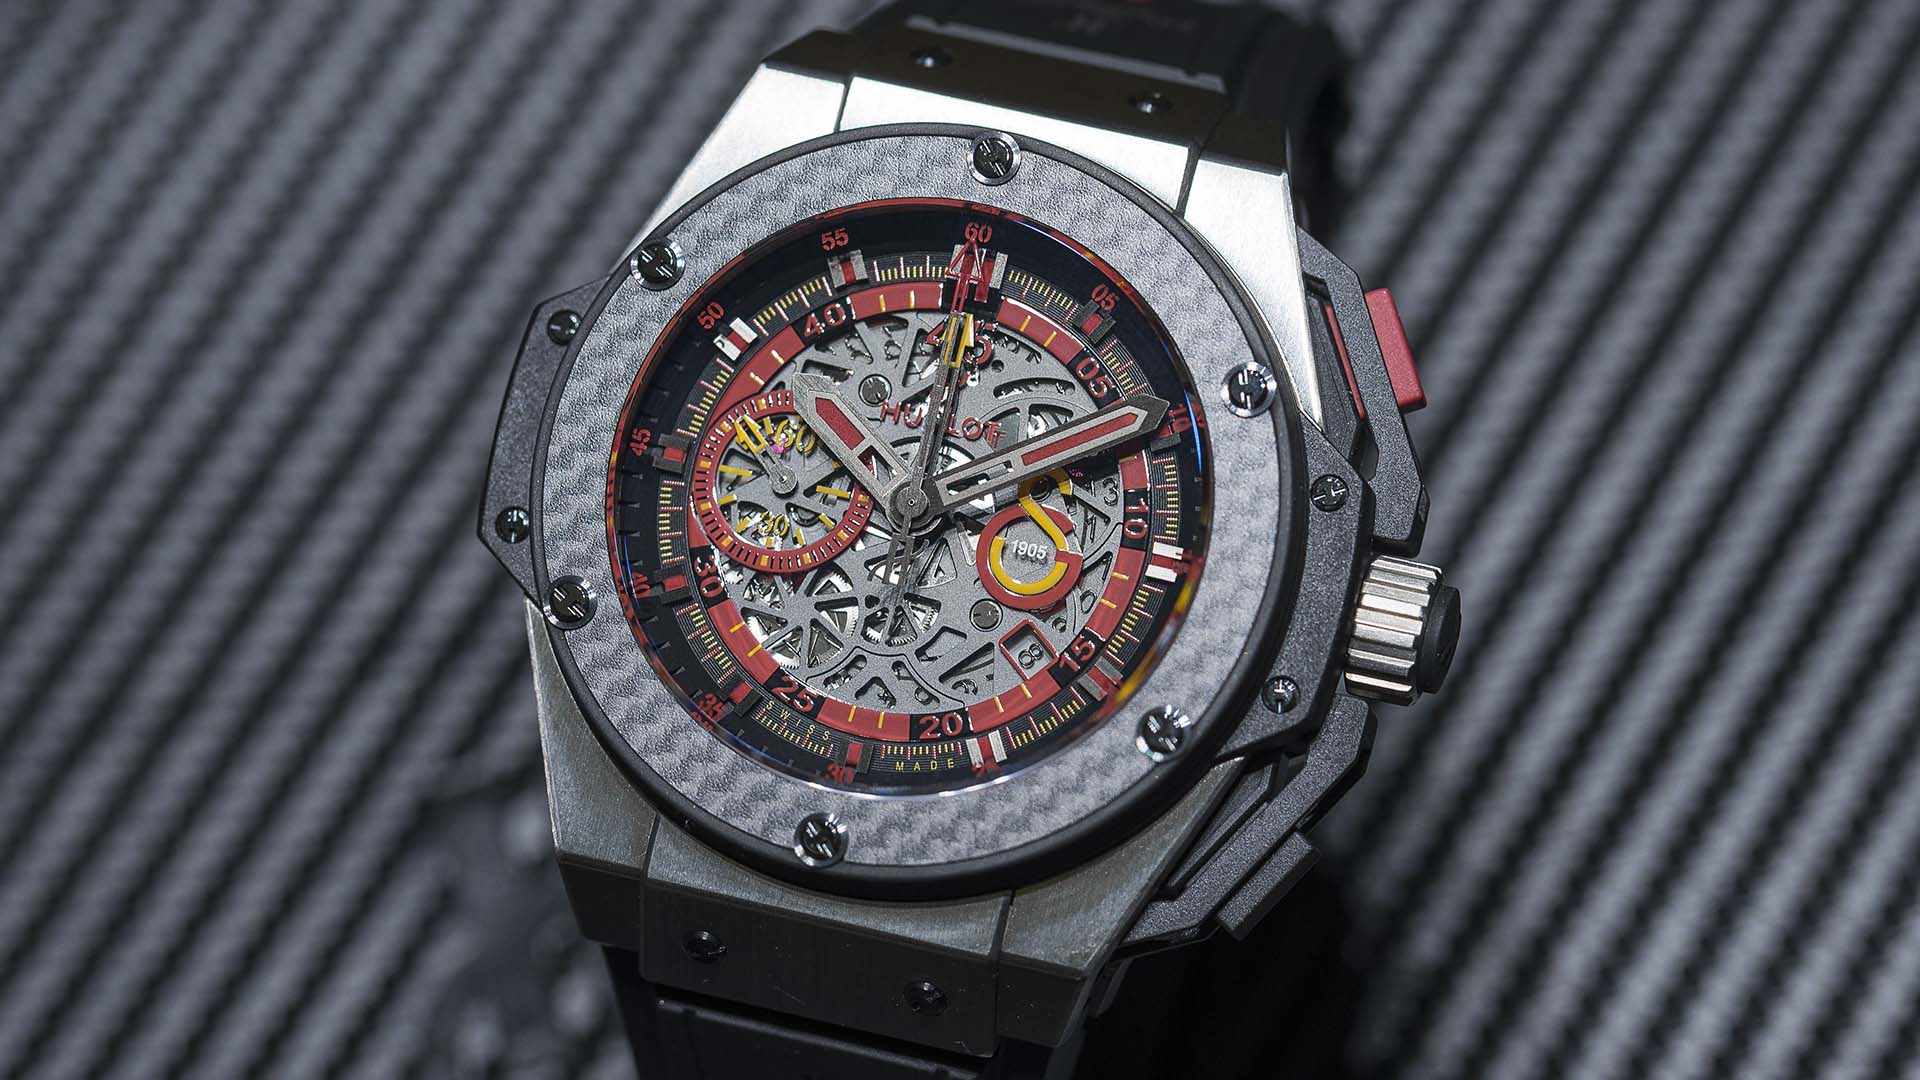 Hublot_King_Power_Galatasaray_716-NQ-0139-RX-FCG14_0040.jpeg